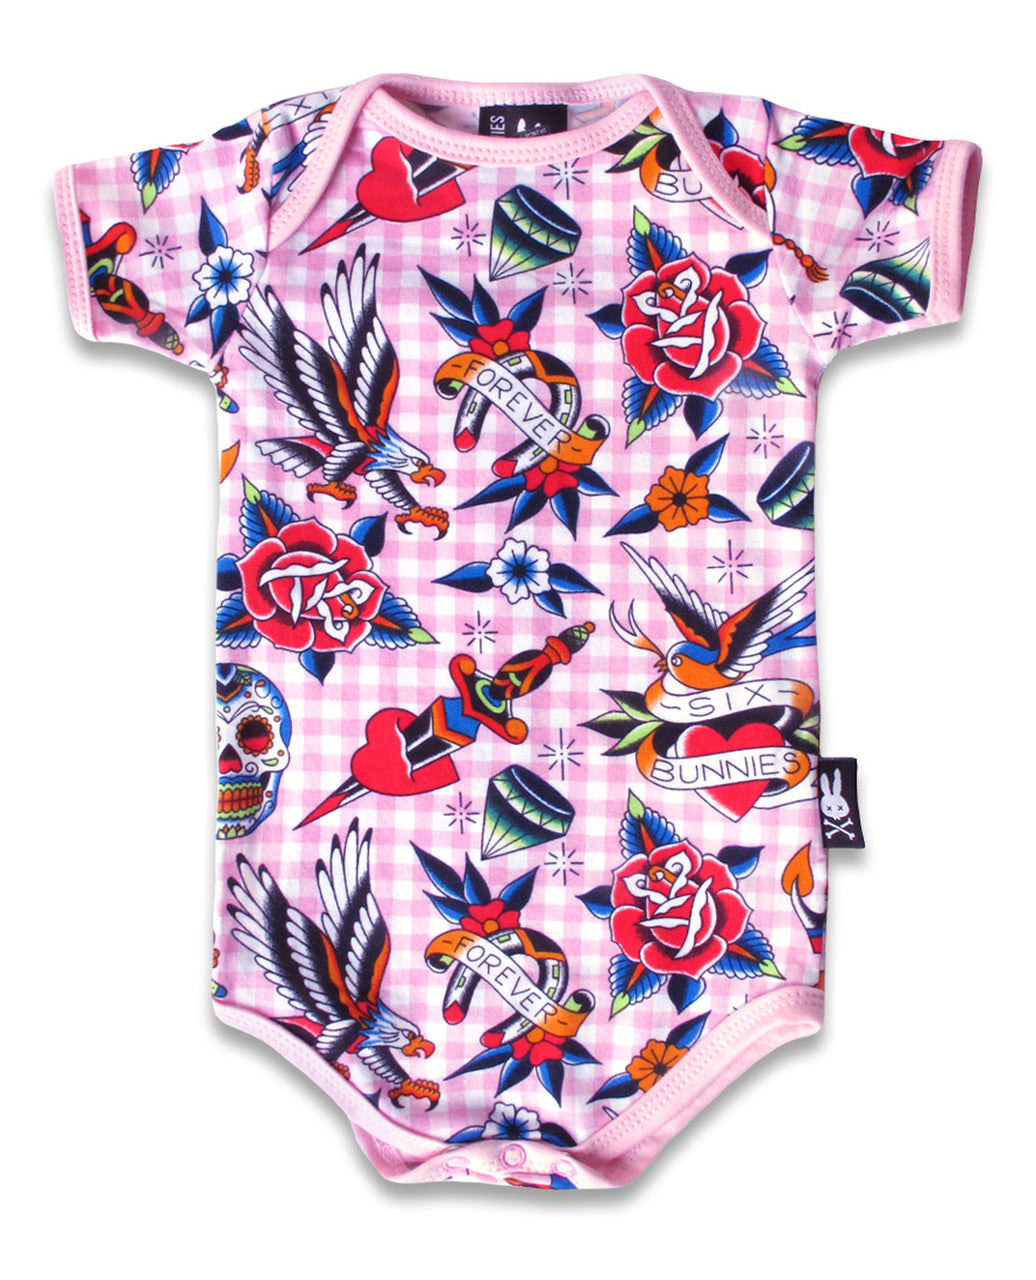 Six Bunnies - Tattoo Shoppe Romper - Pink